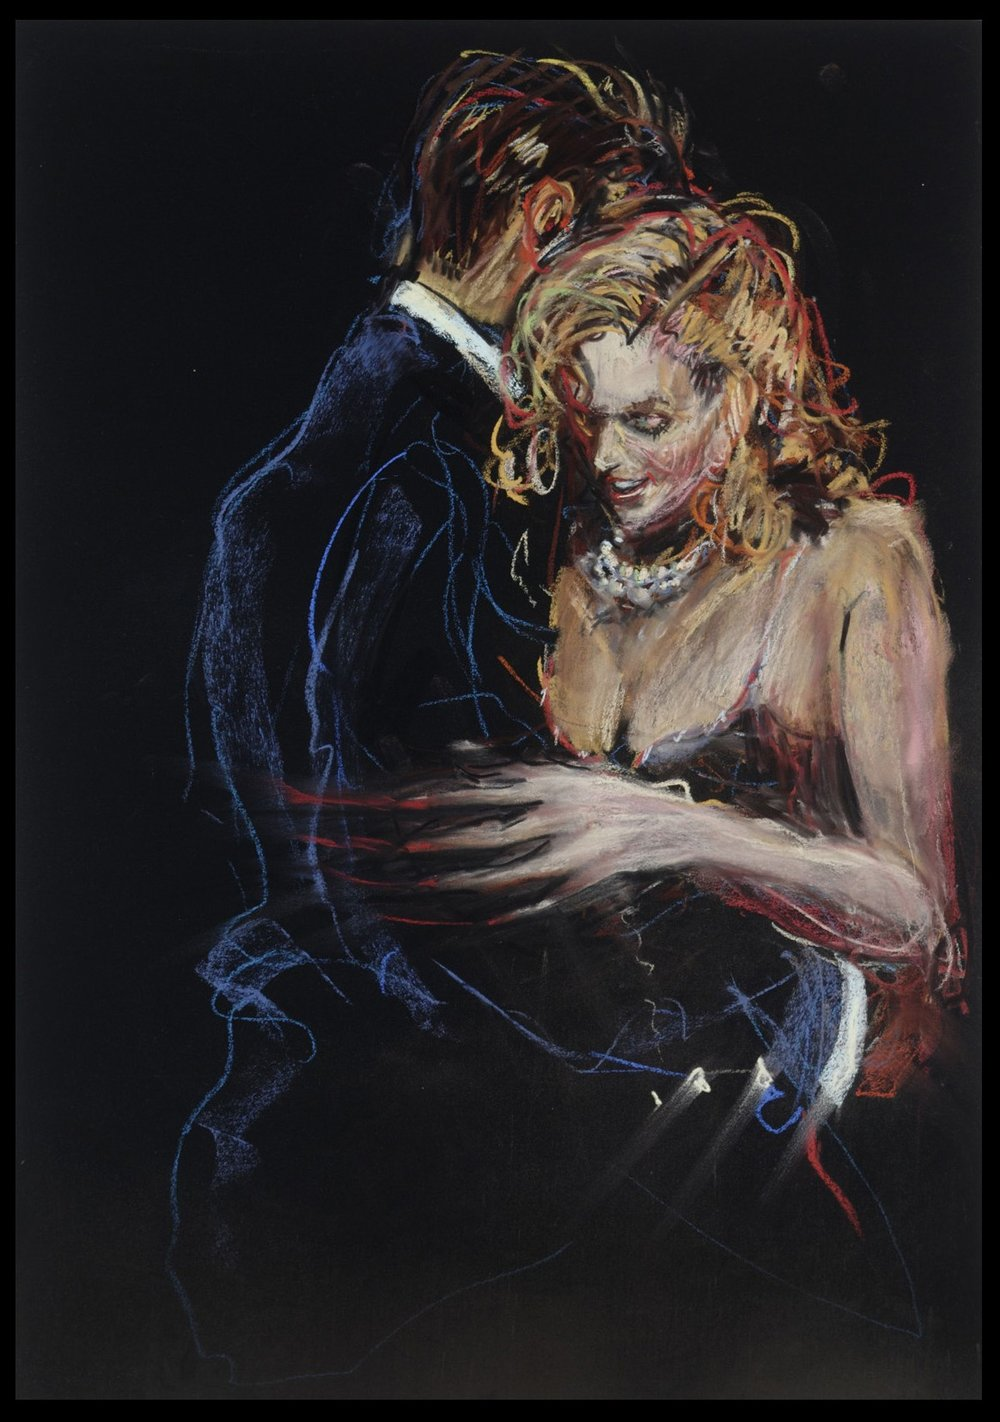 He Swirled Her Pearls  18 x 26 inches, pastel on paper